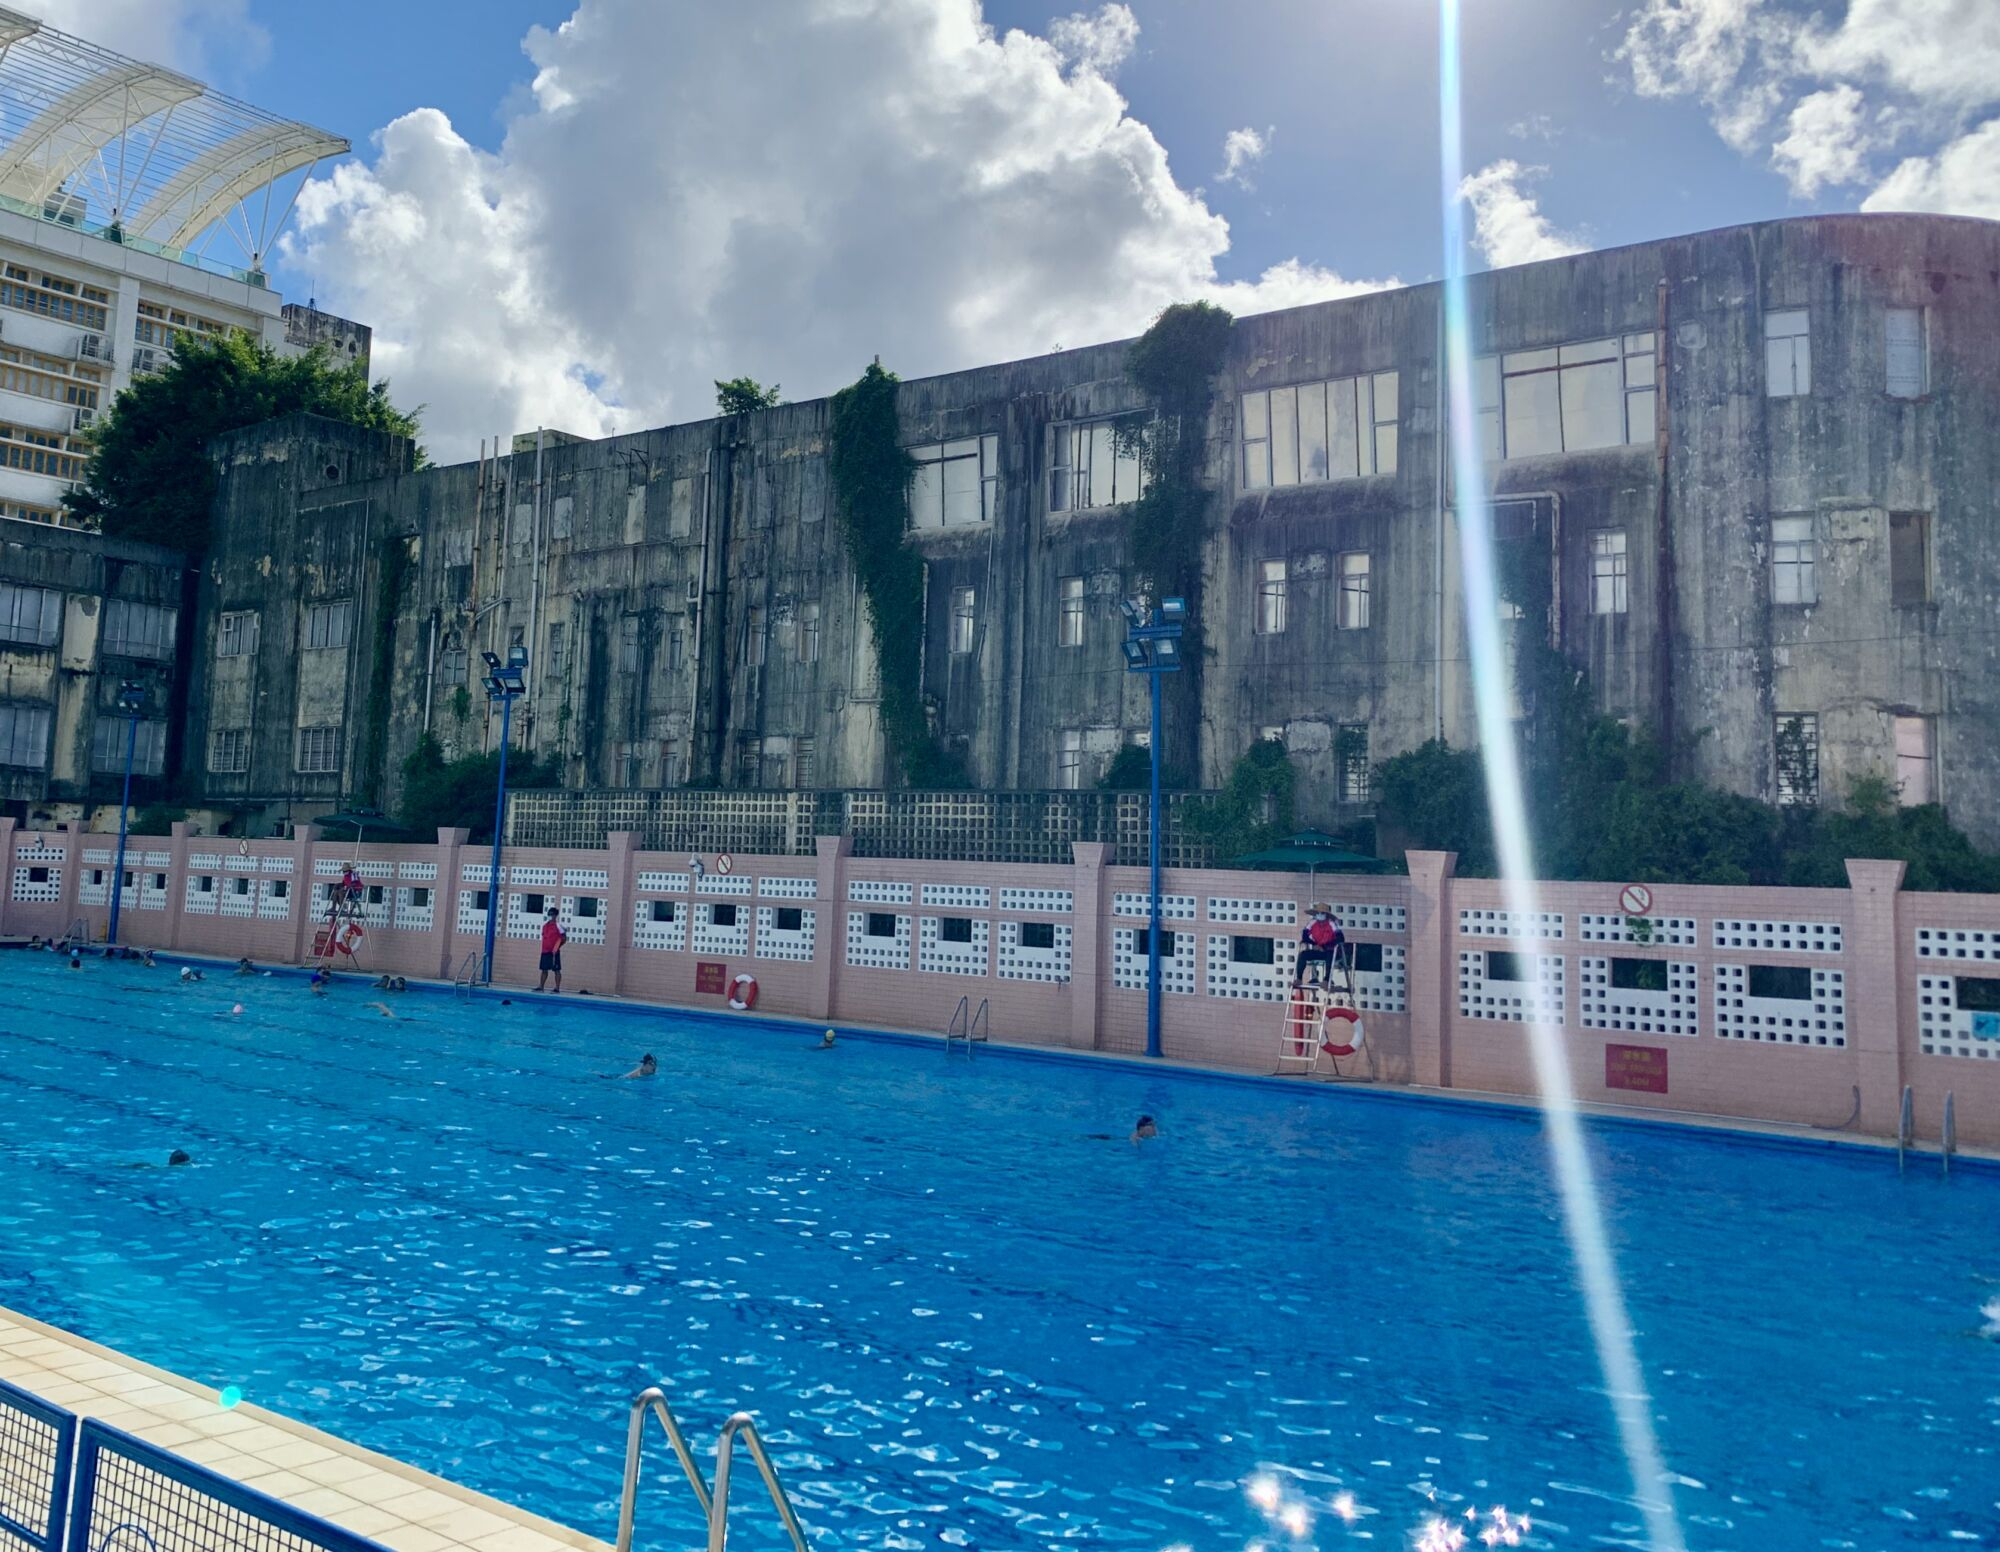 Tap Seac Swimming Pool Wide View from Below Sunny Day Macau Lifestyle Activity Classes for Adults